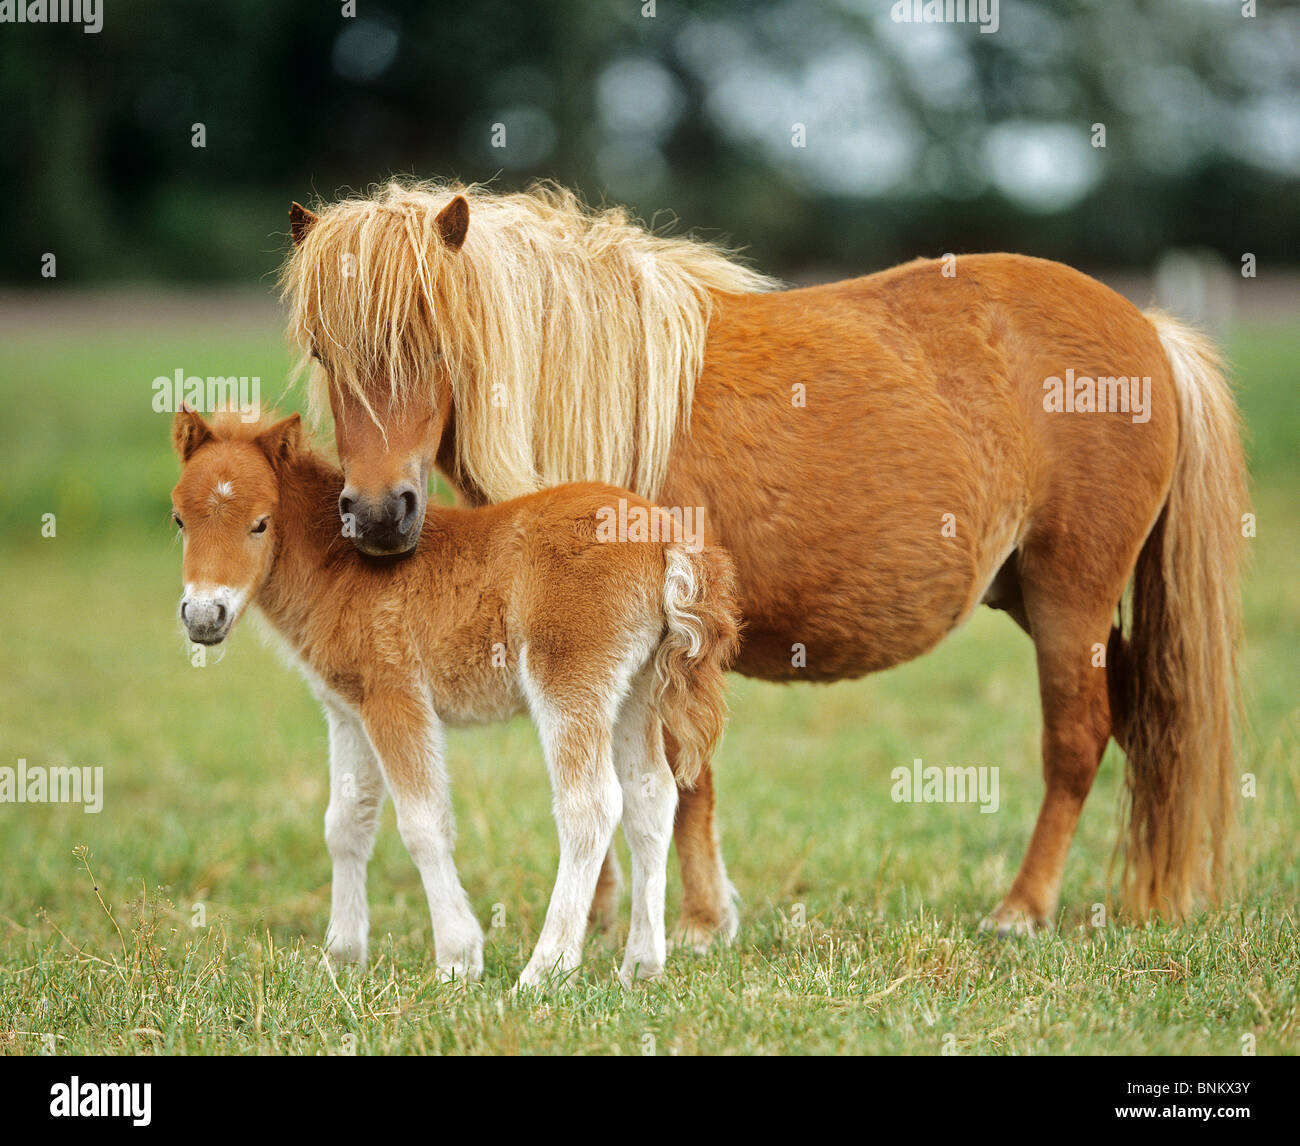 miniature shetland pony mare with foal on a meadow stock photo royalty free image 30555727. Black Bedroom Furniture Sets. Home Design Ideas